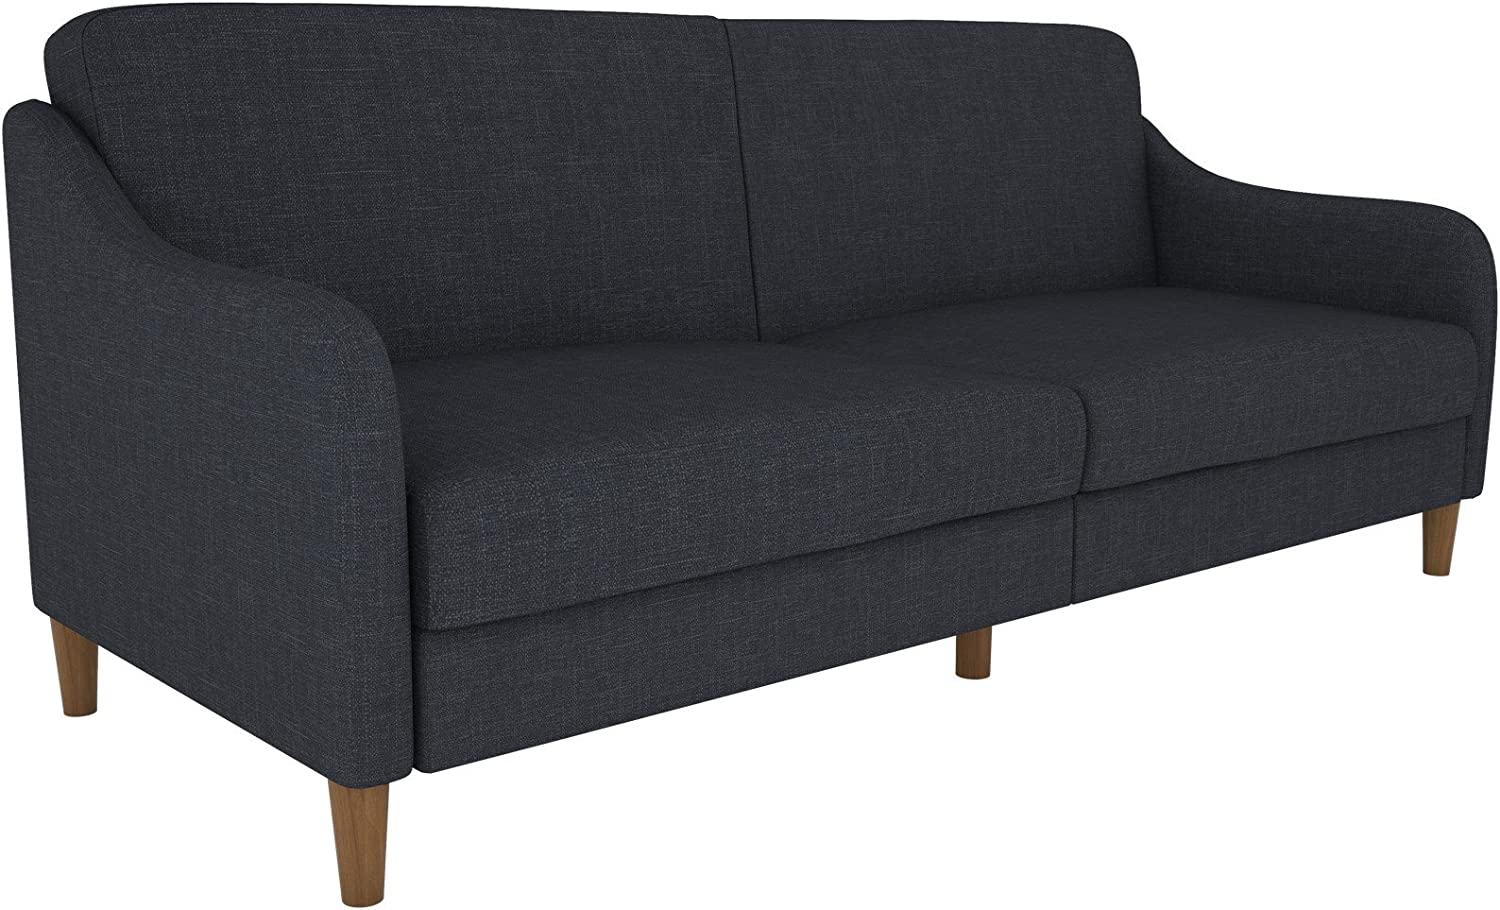 - Elegant Tulsa Convertible Sleeper Sofa With Wing Shaped Arms Made